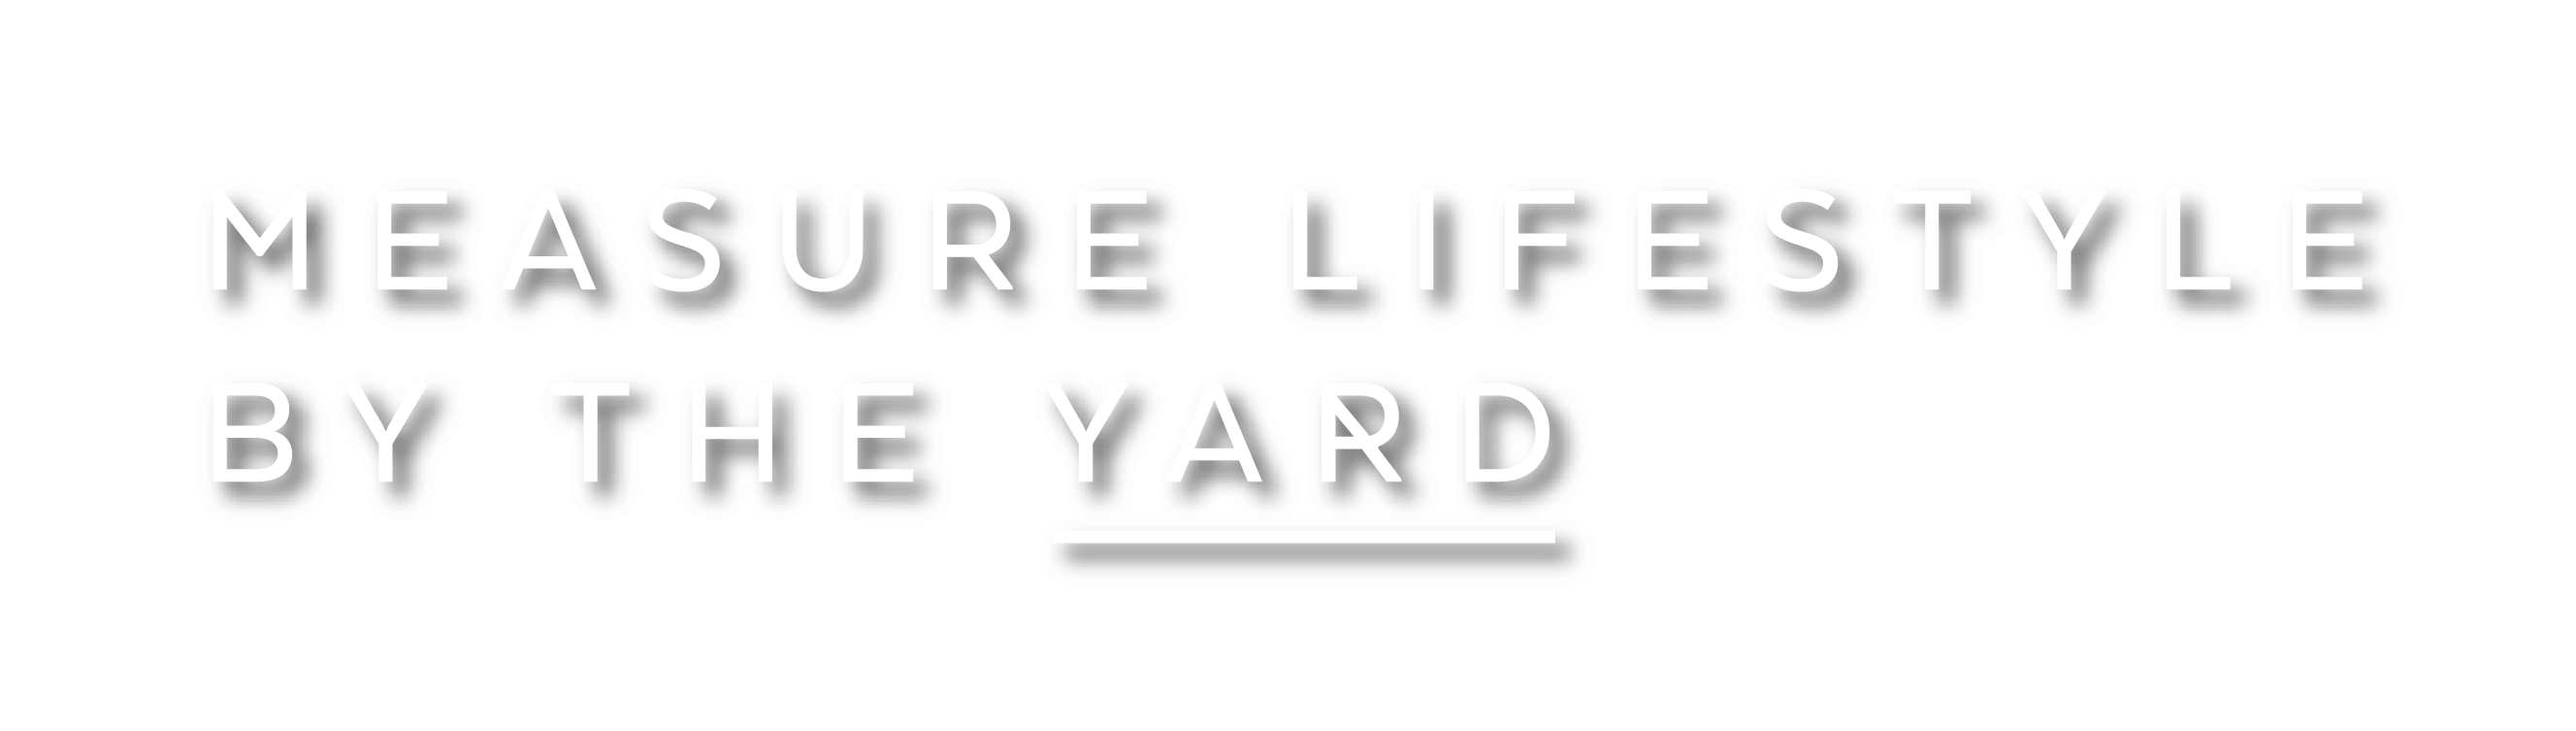 Measure lifestyle by the yard